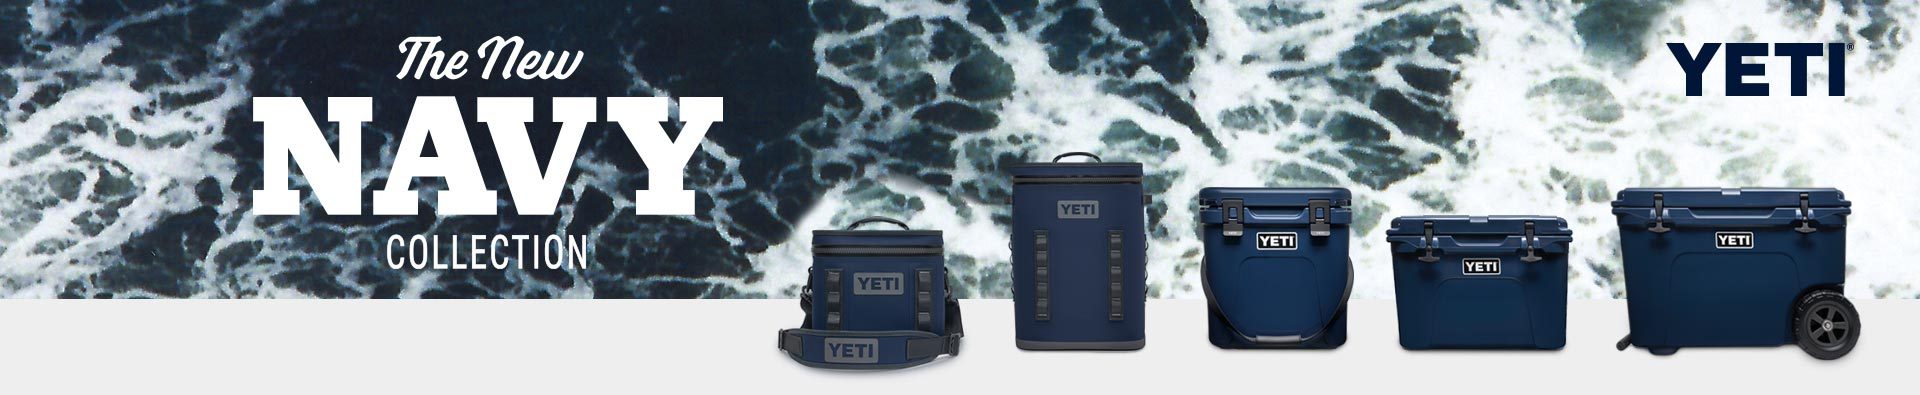 Yeti - The New Navy Collection